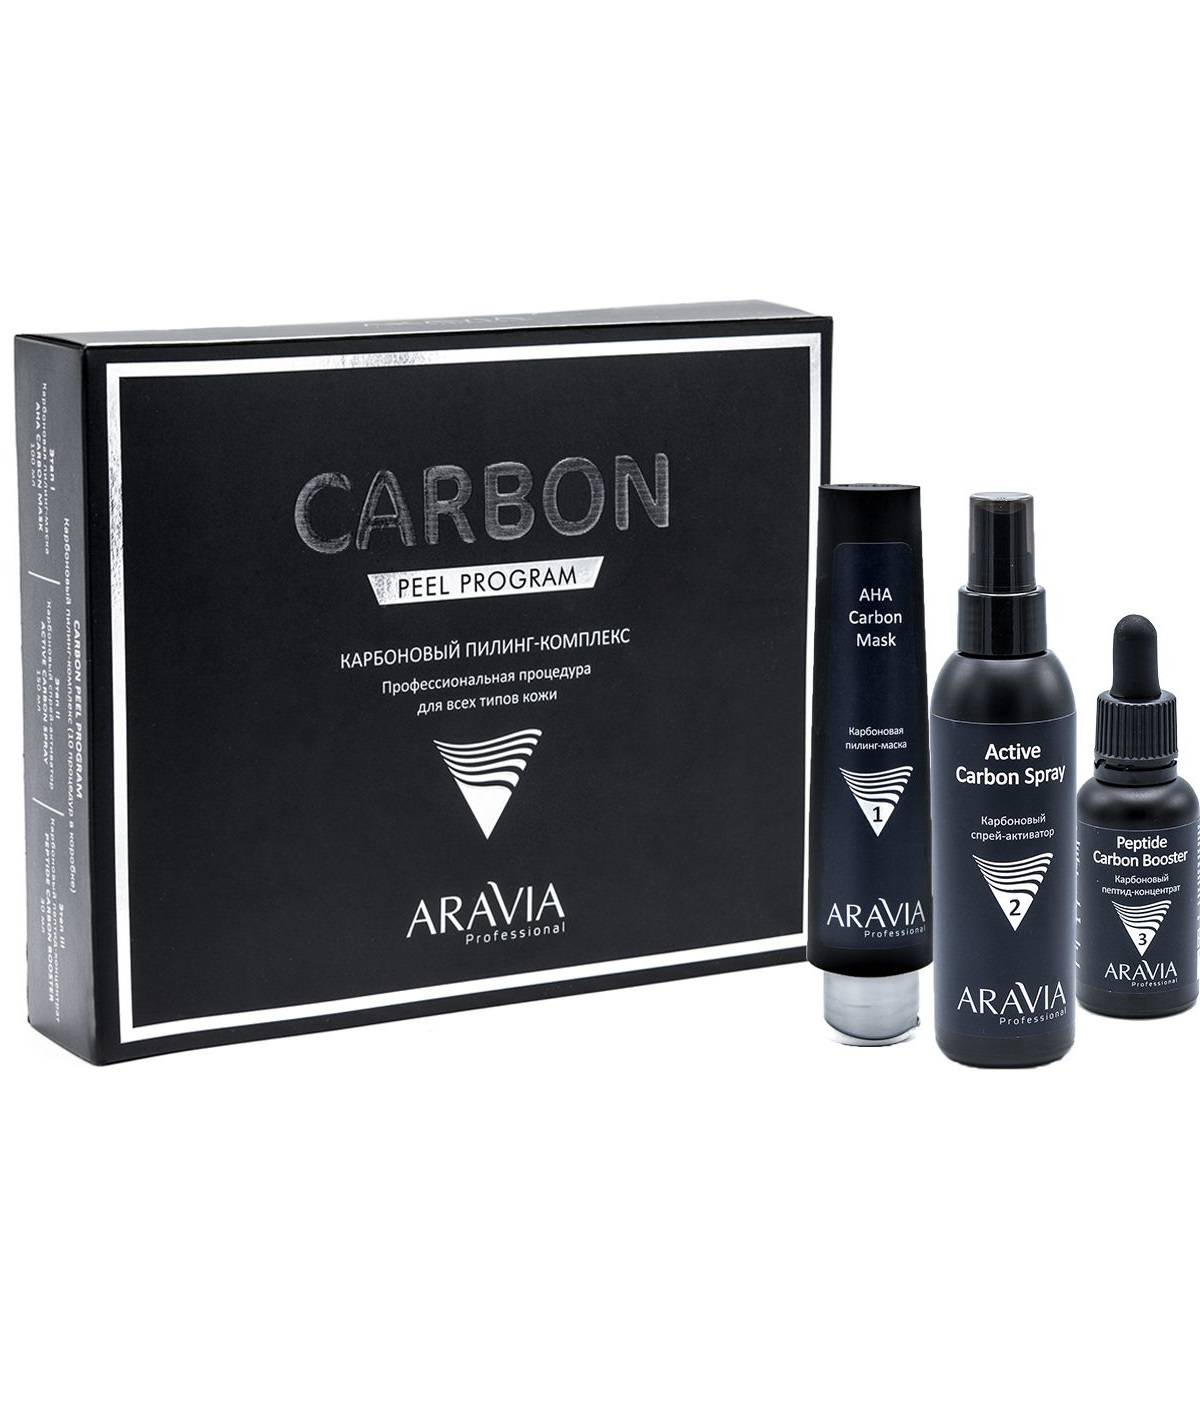 Карбоновый пилинг-комплекс Aravia Professional Carbon Peel Program